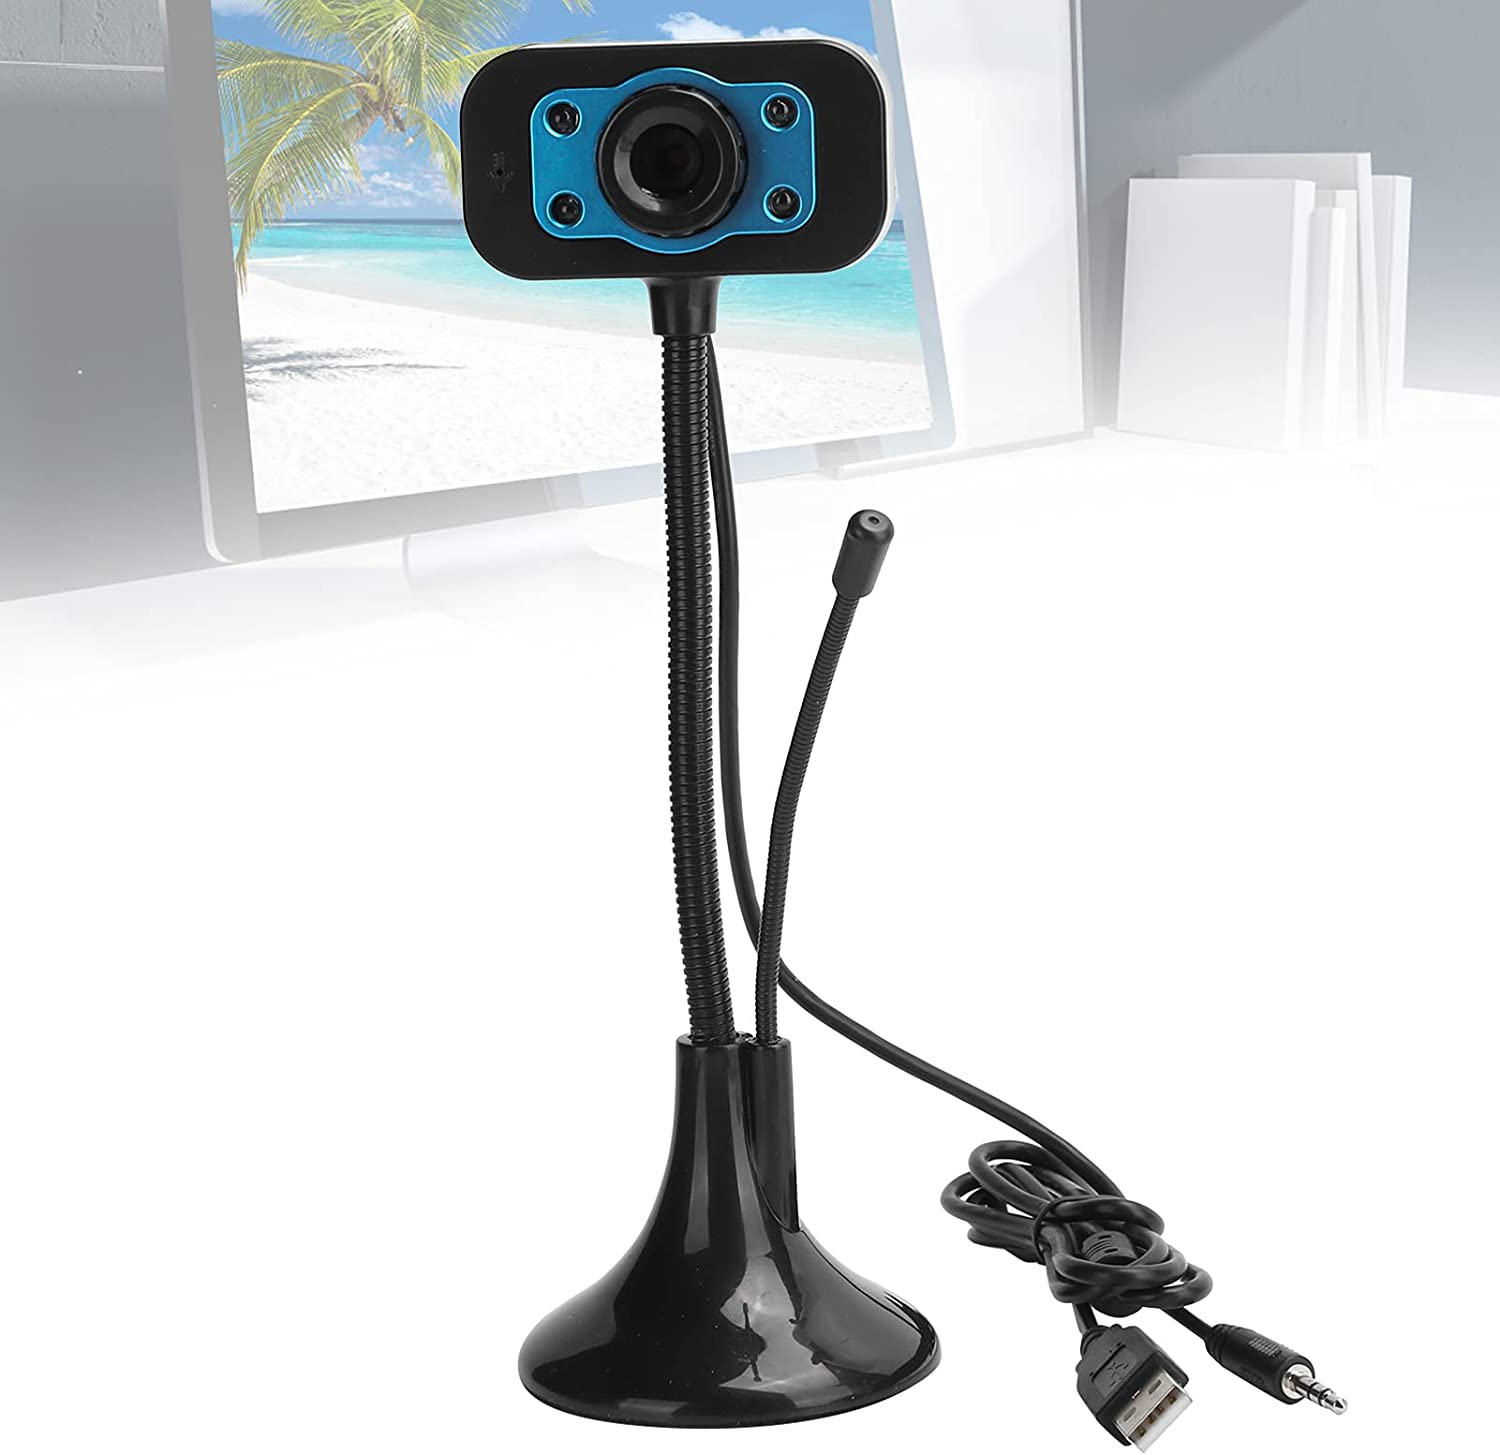 Jacksing Webcam Easy-to-use Automatic White Flexibly Limited Special Price Rotate Drive†Balance